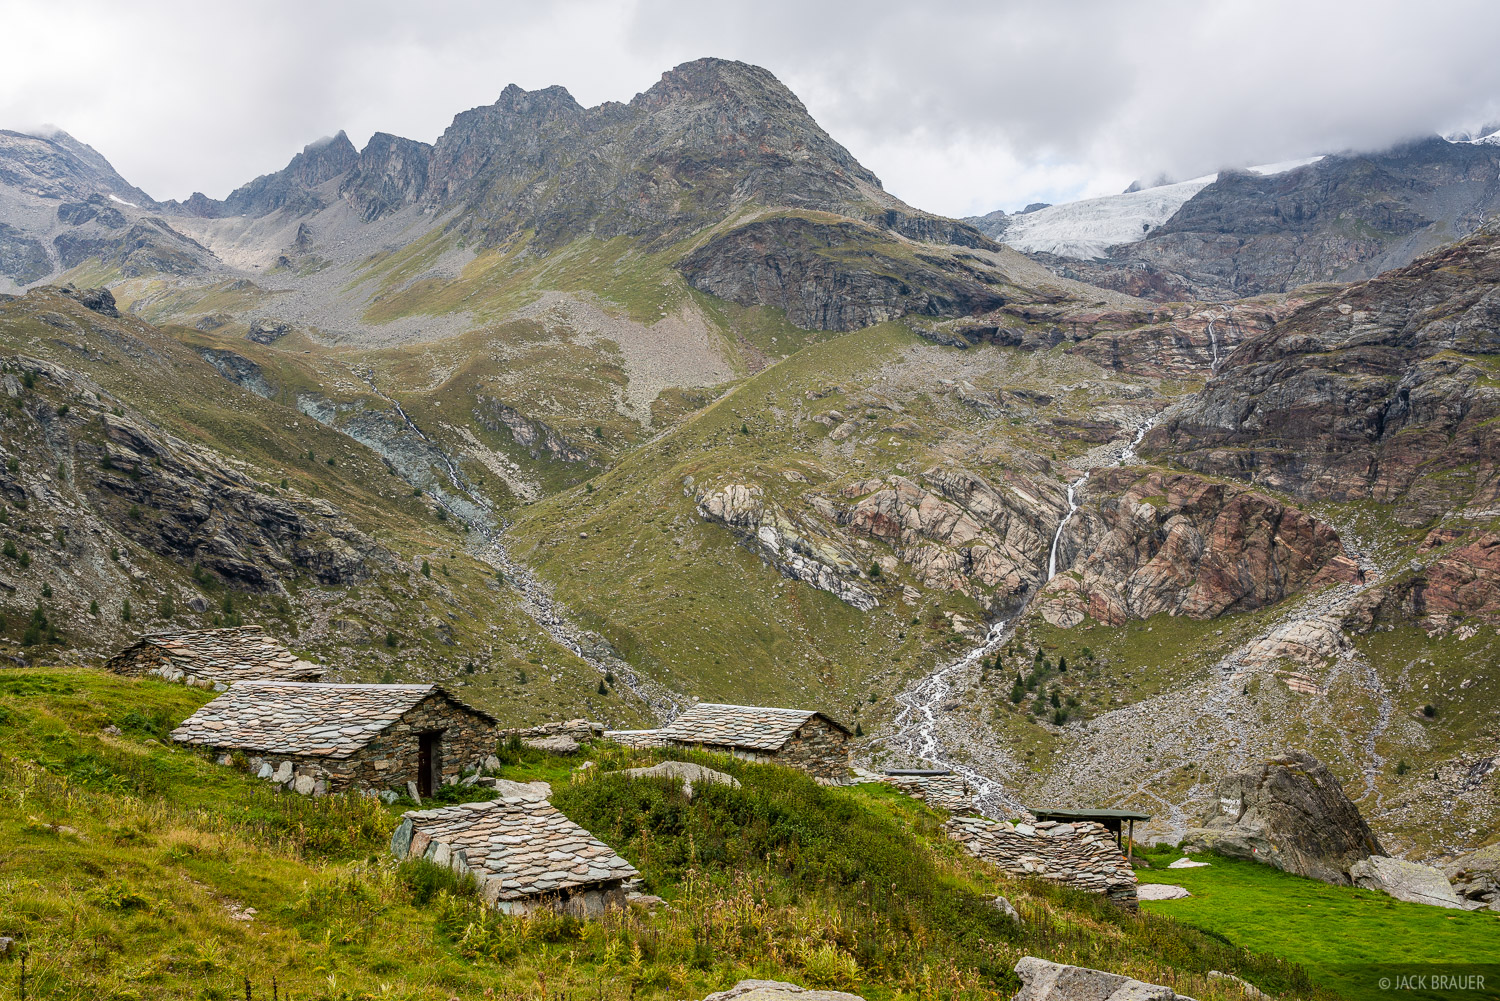 Traditional stone houses of sheep and goat herders at Alpe Gembré in Italy.